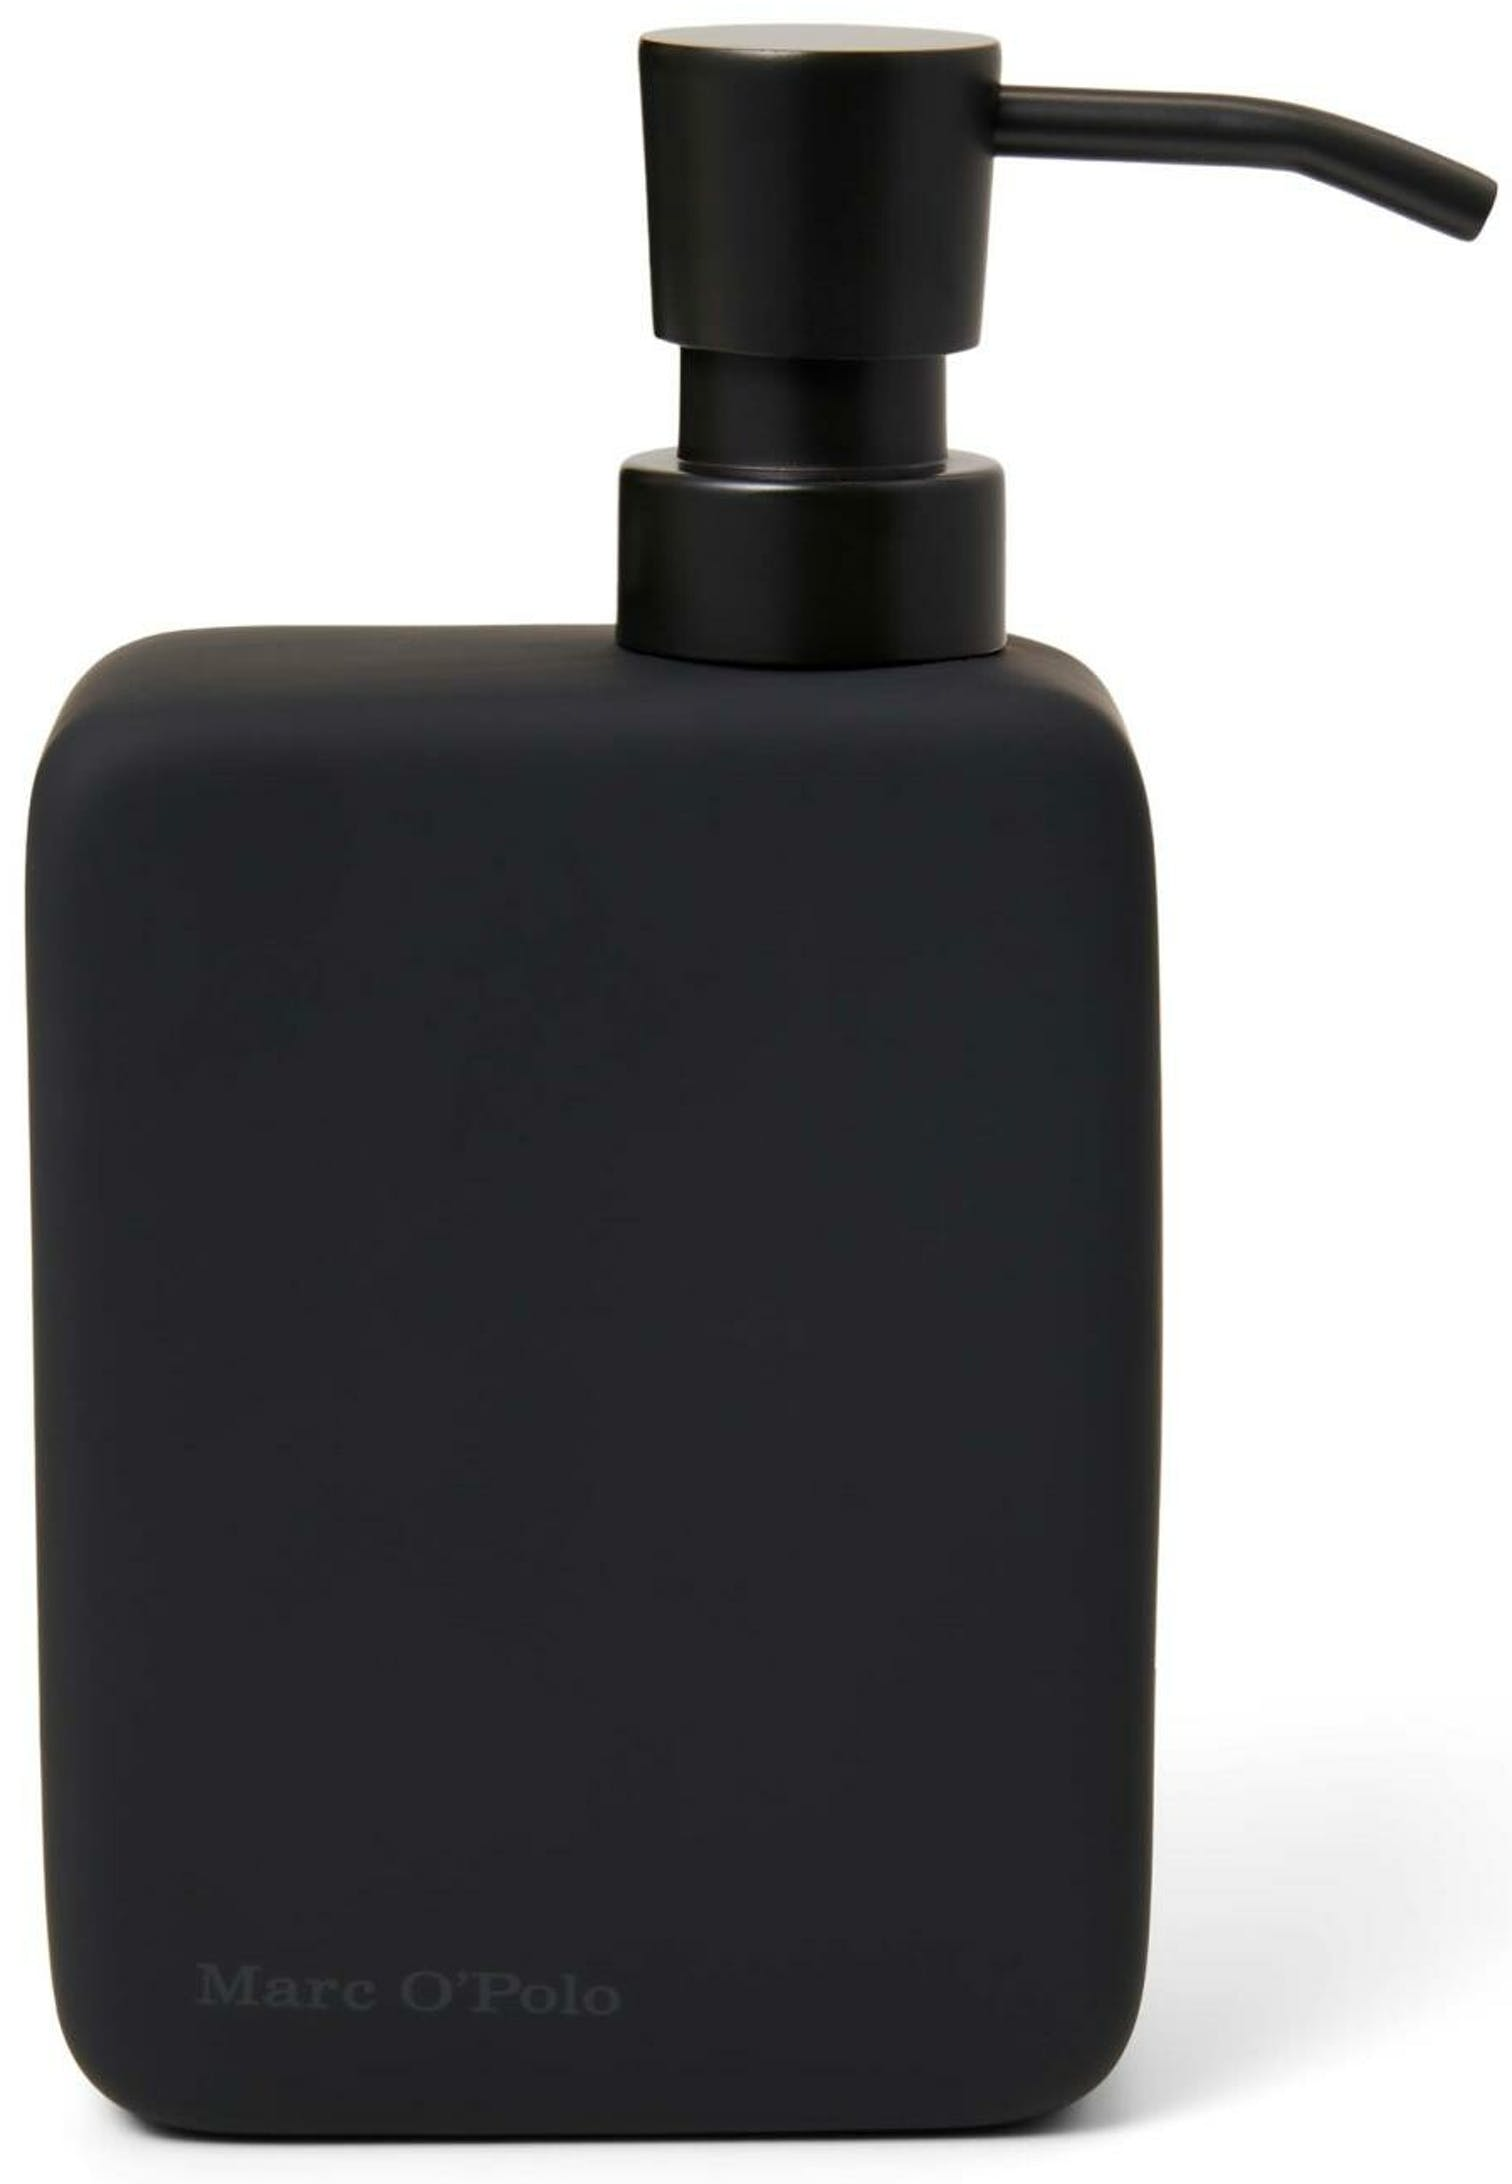 Marc O'Polo The Edge Anthracite Soap dispenser 9 x 4 x 18